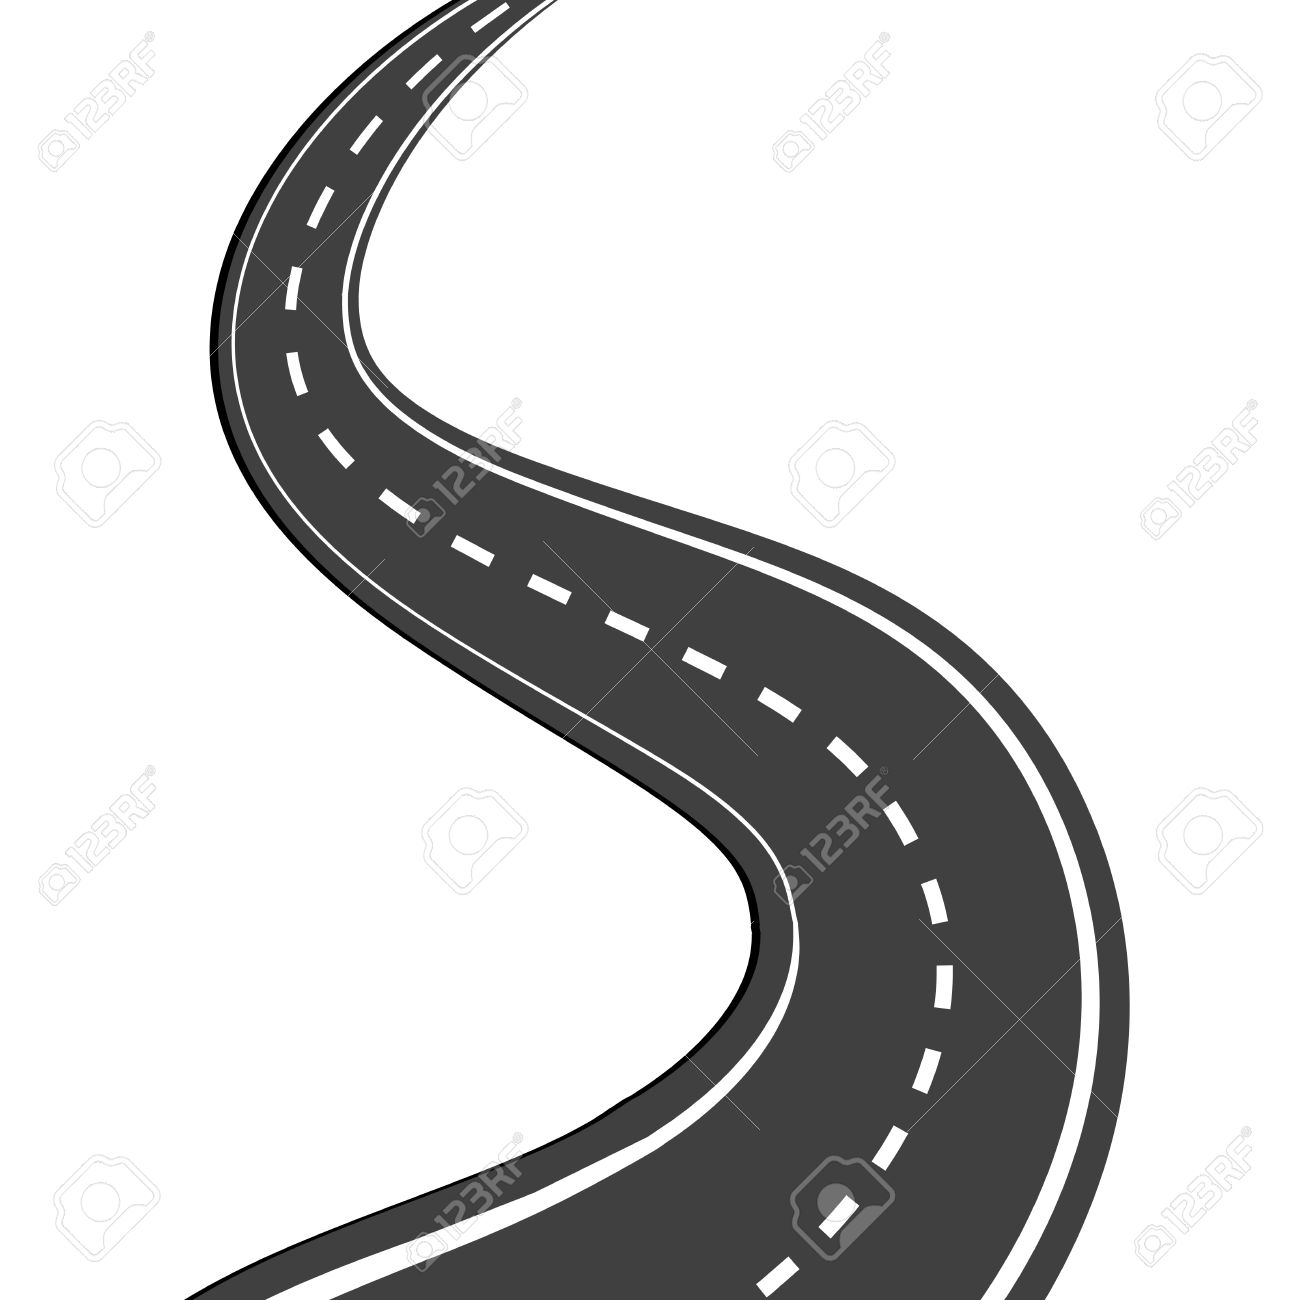 1299x1300 Roadway clipart black and white